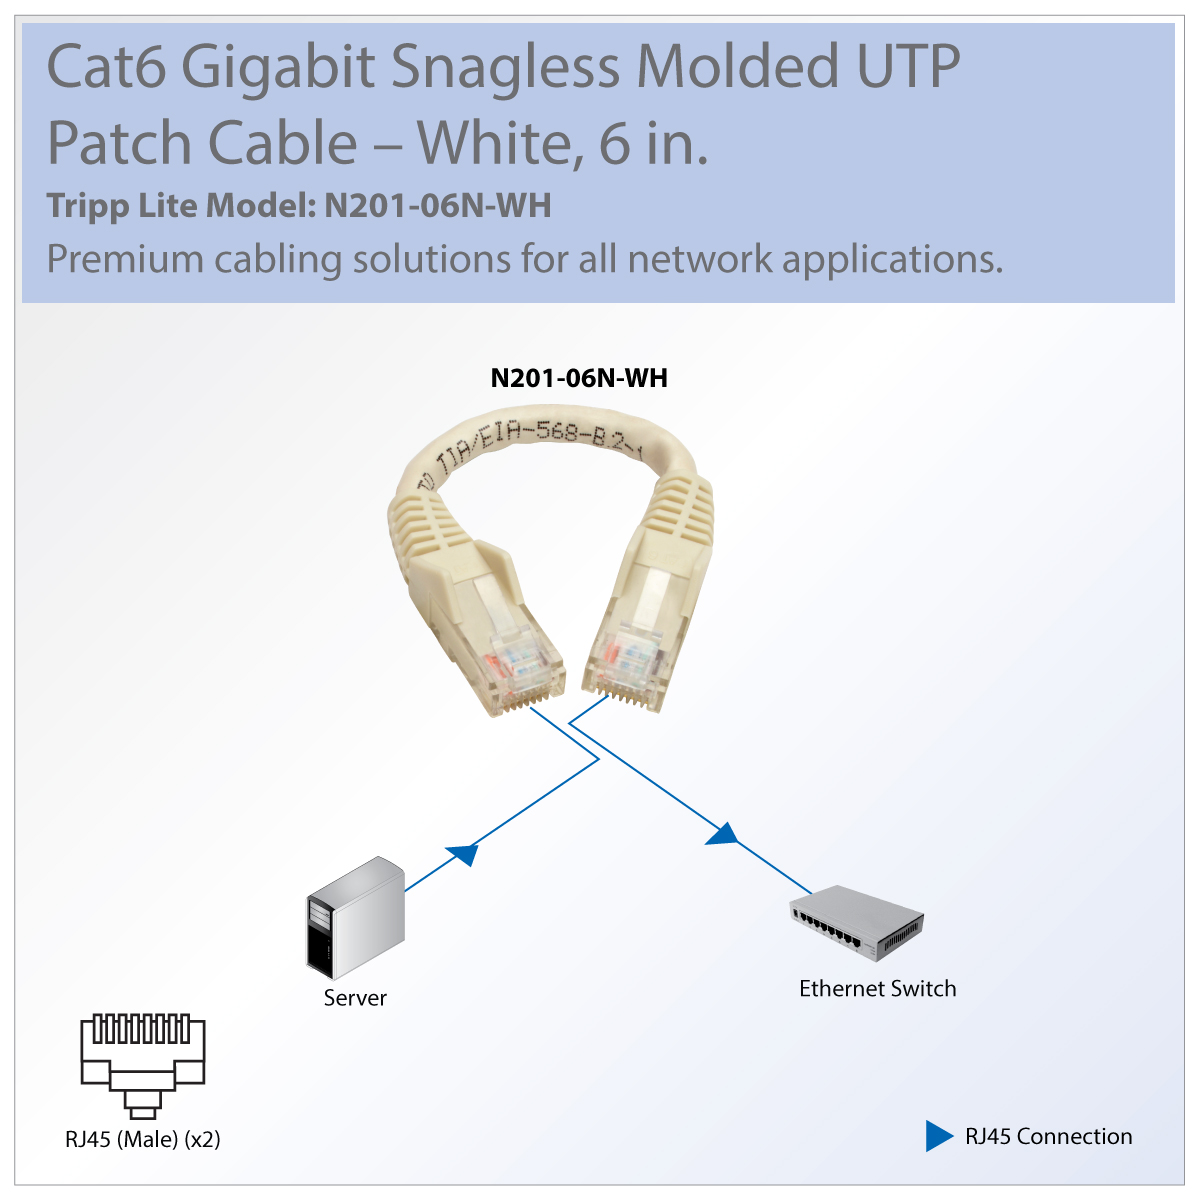 Tripp Lite Cat6 Gbe Snagless Molded Patch Cable Utp White Rj45 M Wiring Diagram How To Wire Your House With Cat5e Or Delivers Superior Signal Quality Top Of The Line Construction